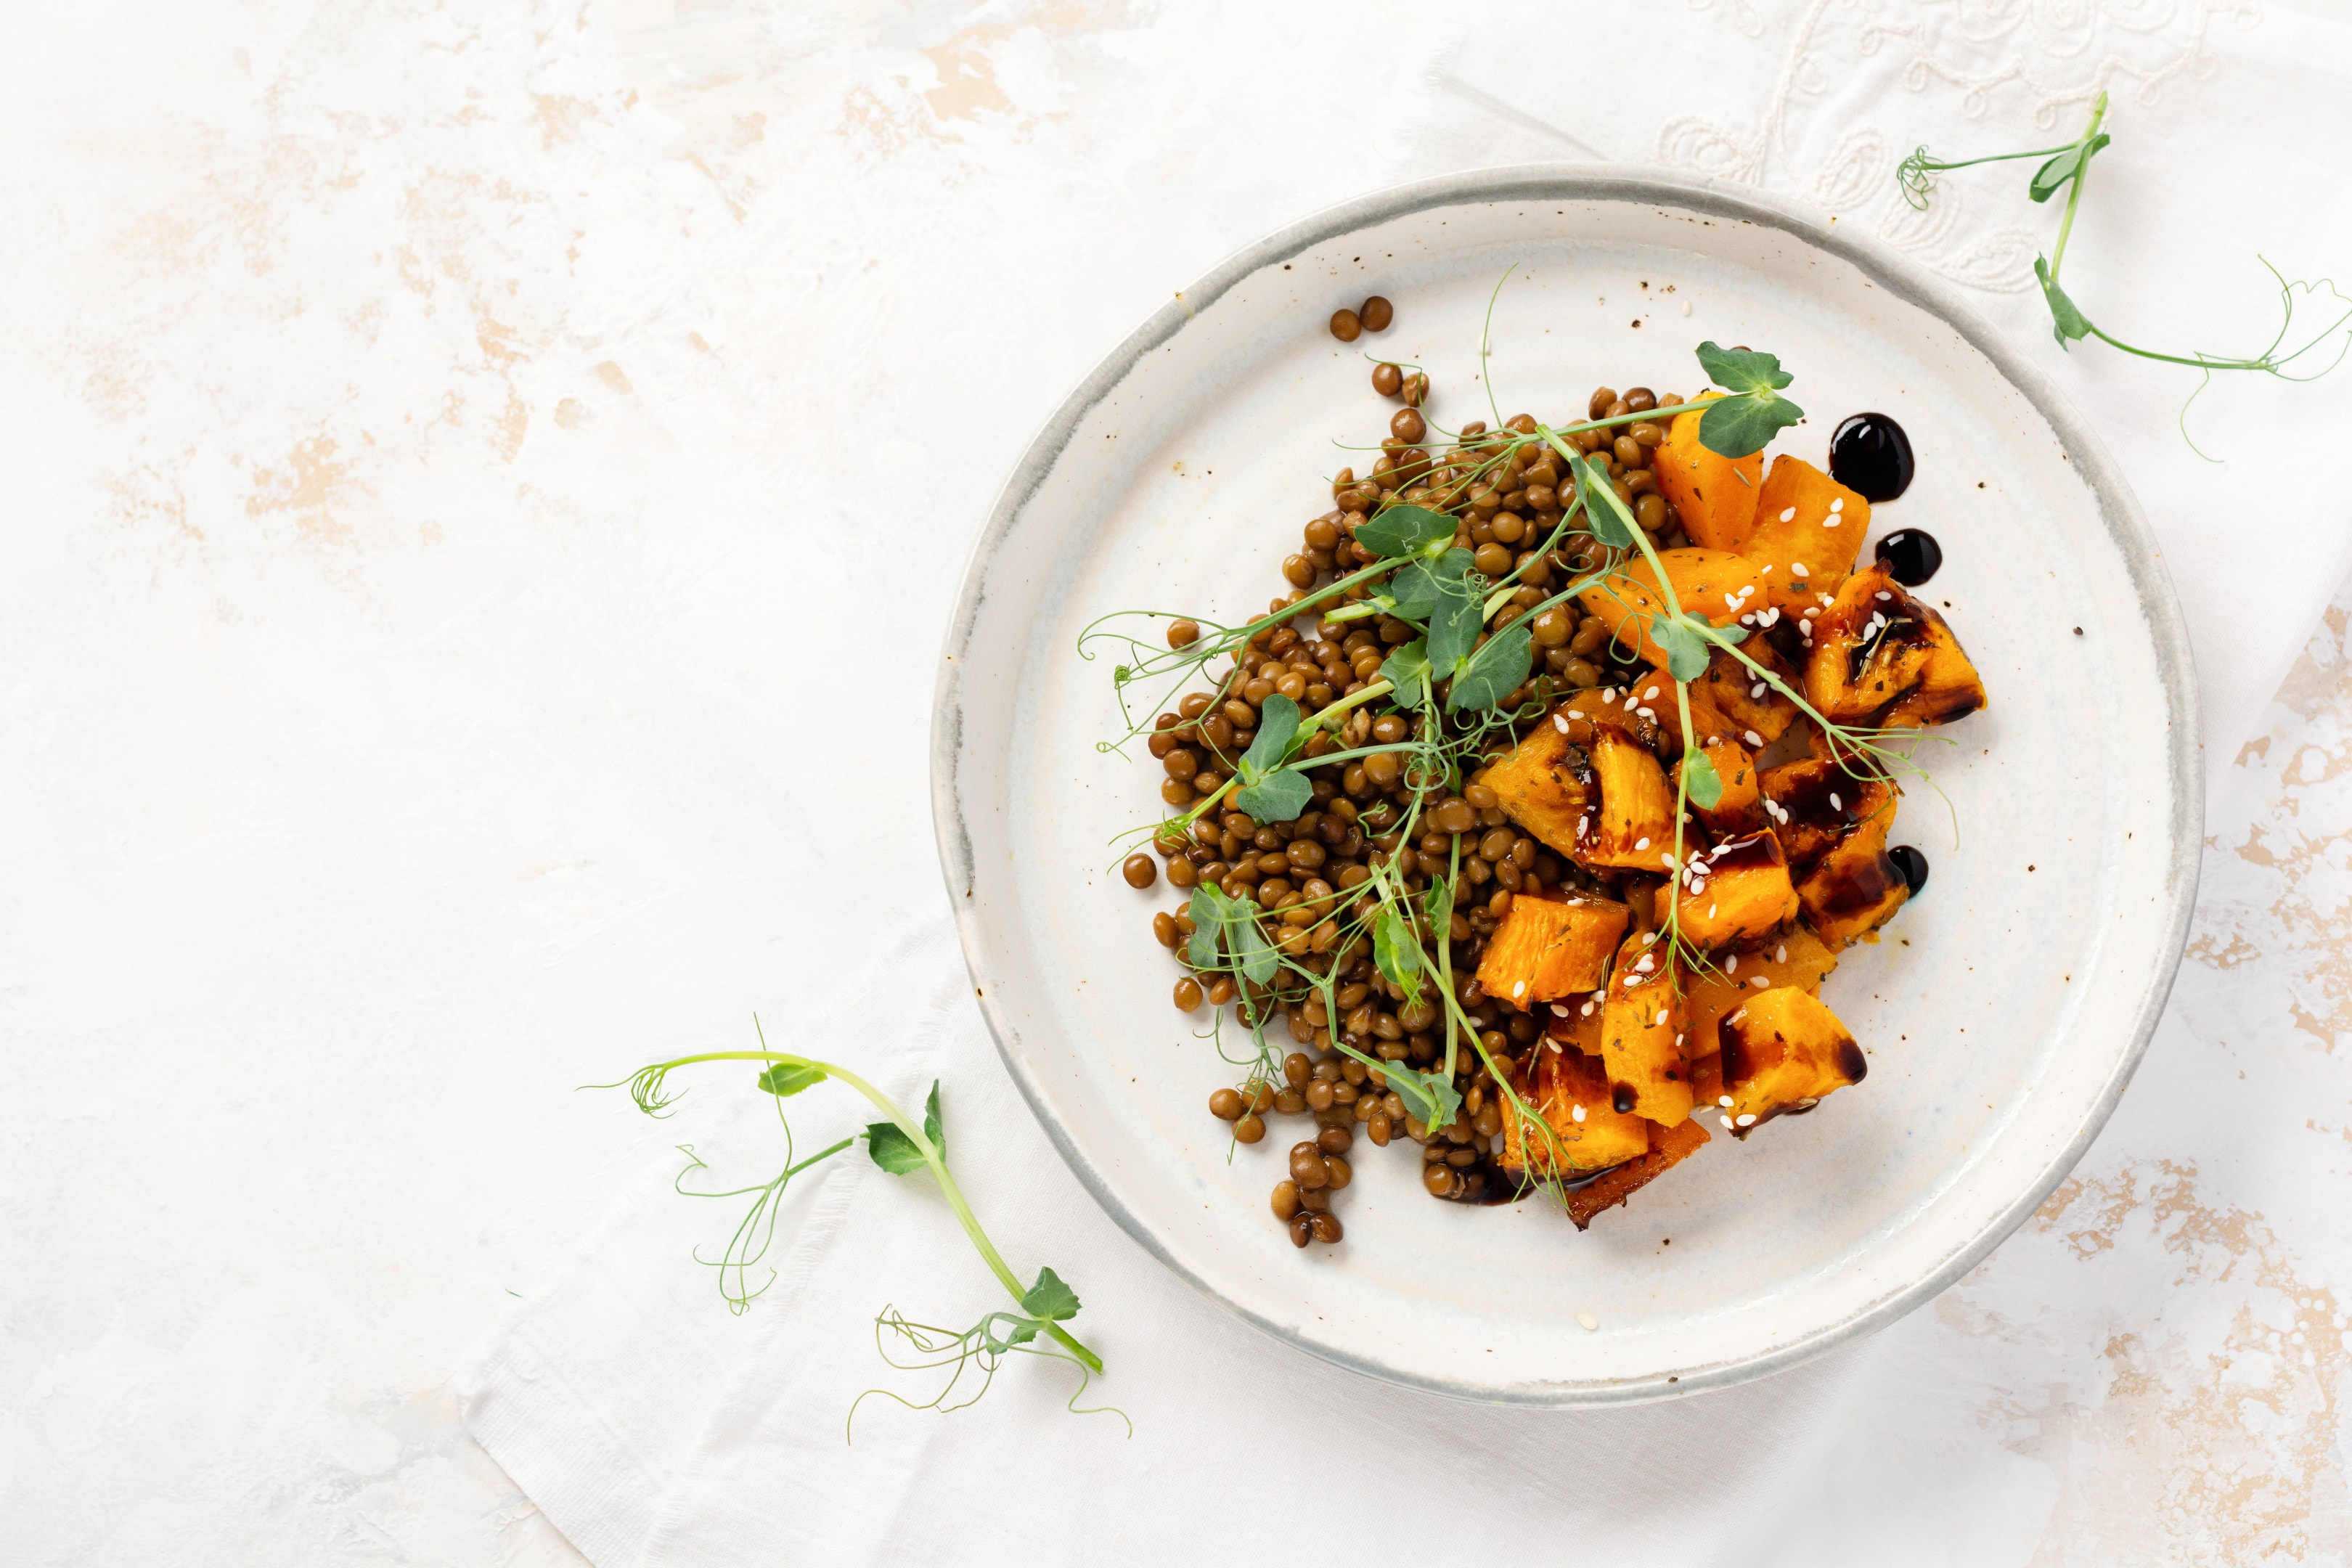 Salad with baked pumpkin lentils balsamic dressing garnished with peas microgreens